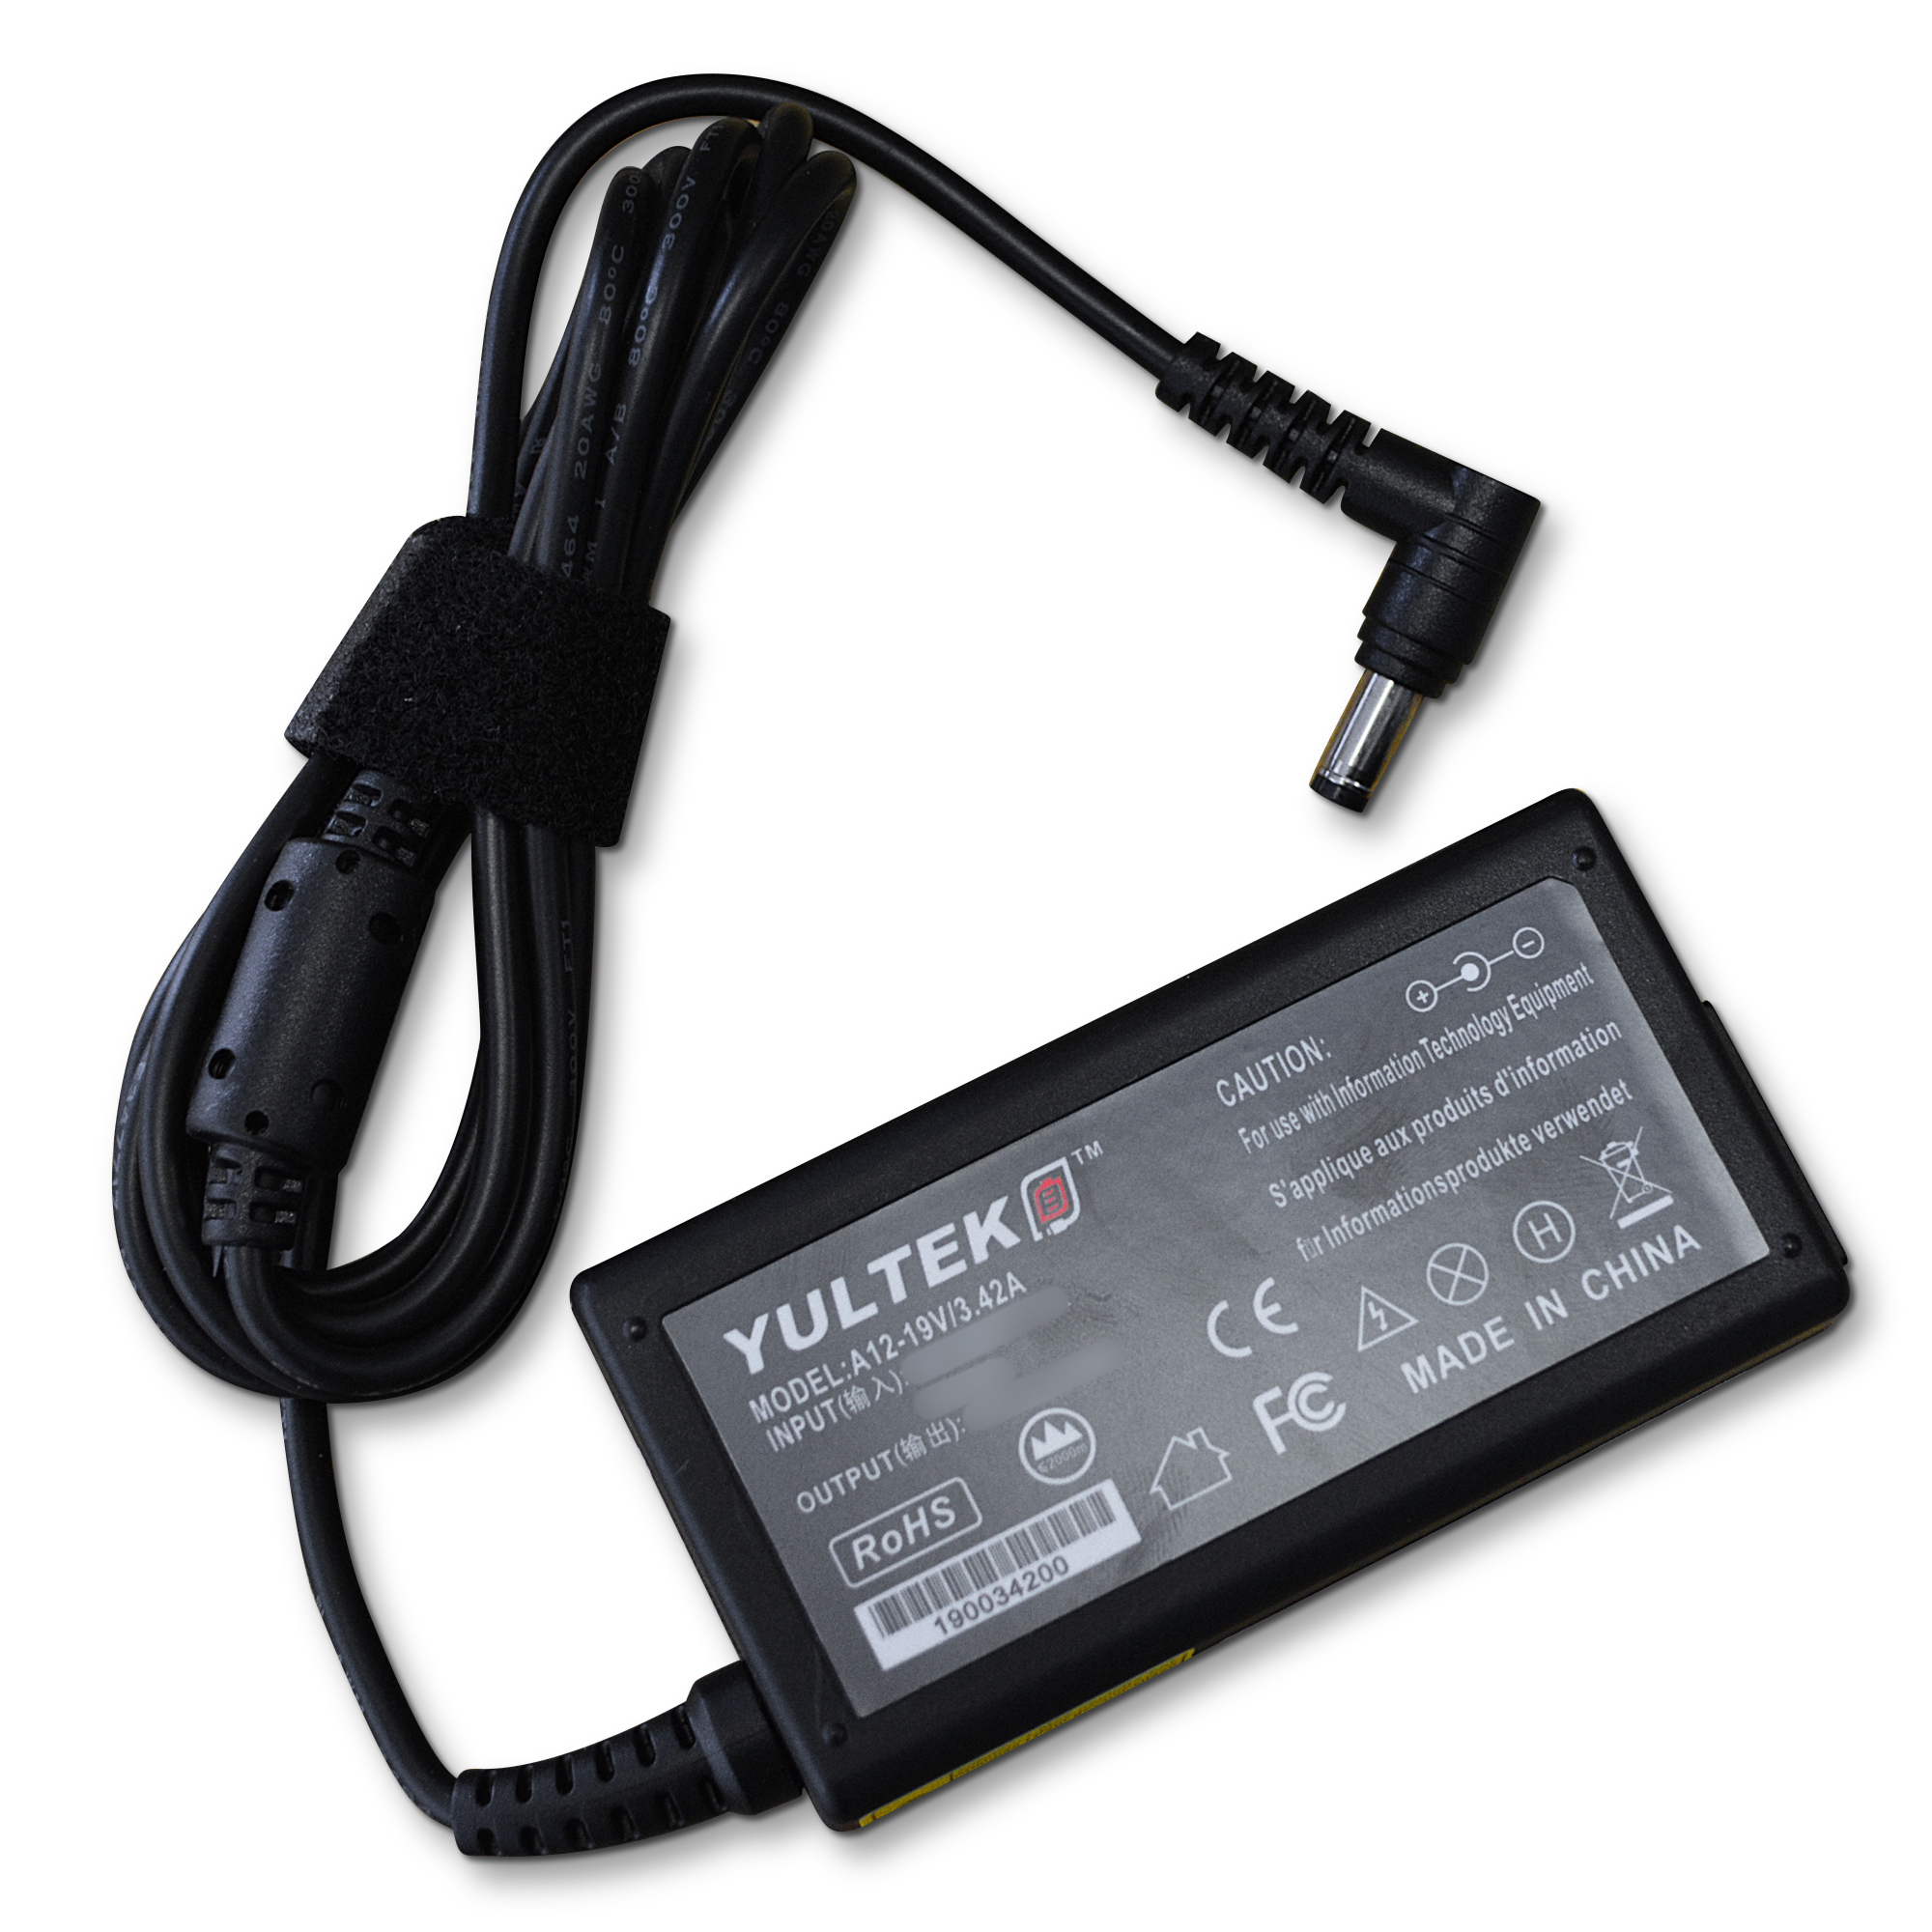 Fujitsu-Siemens Part Number QUT:1ACYZZZFX31 Laptop Charger